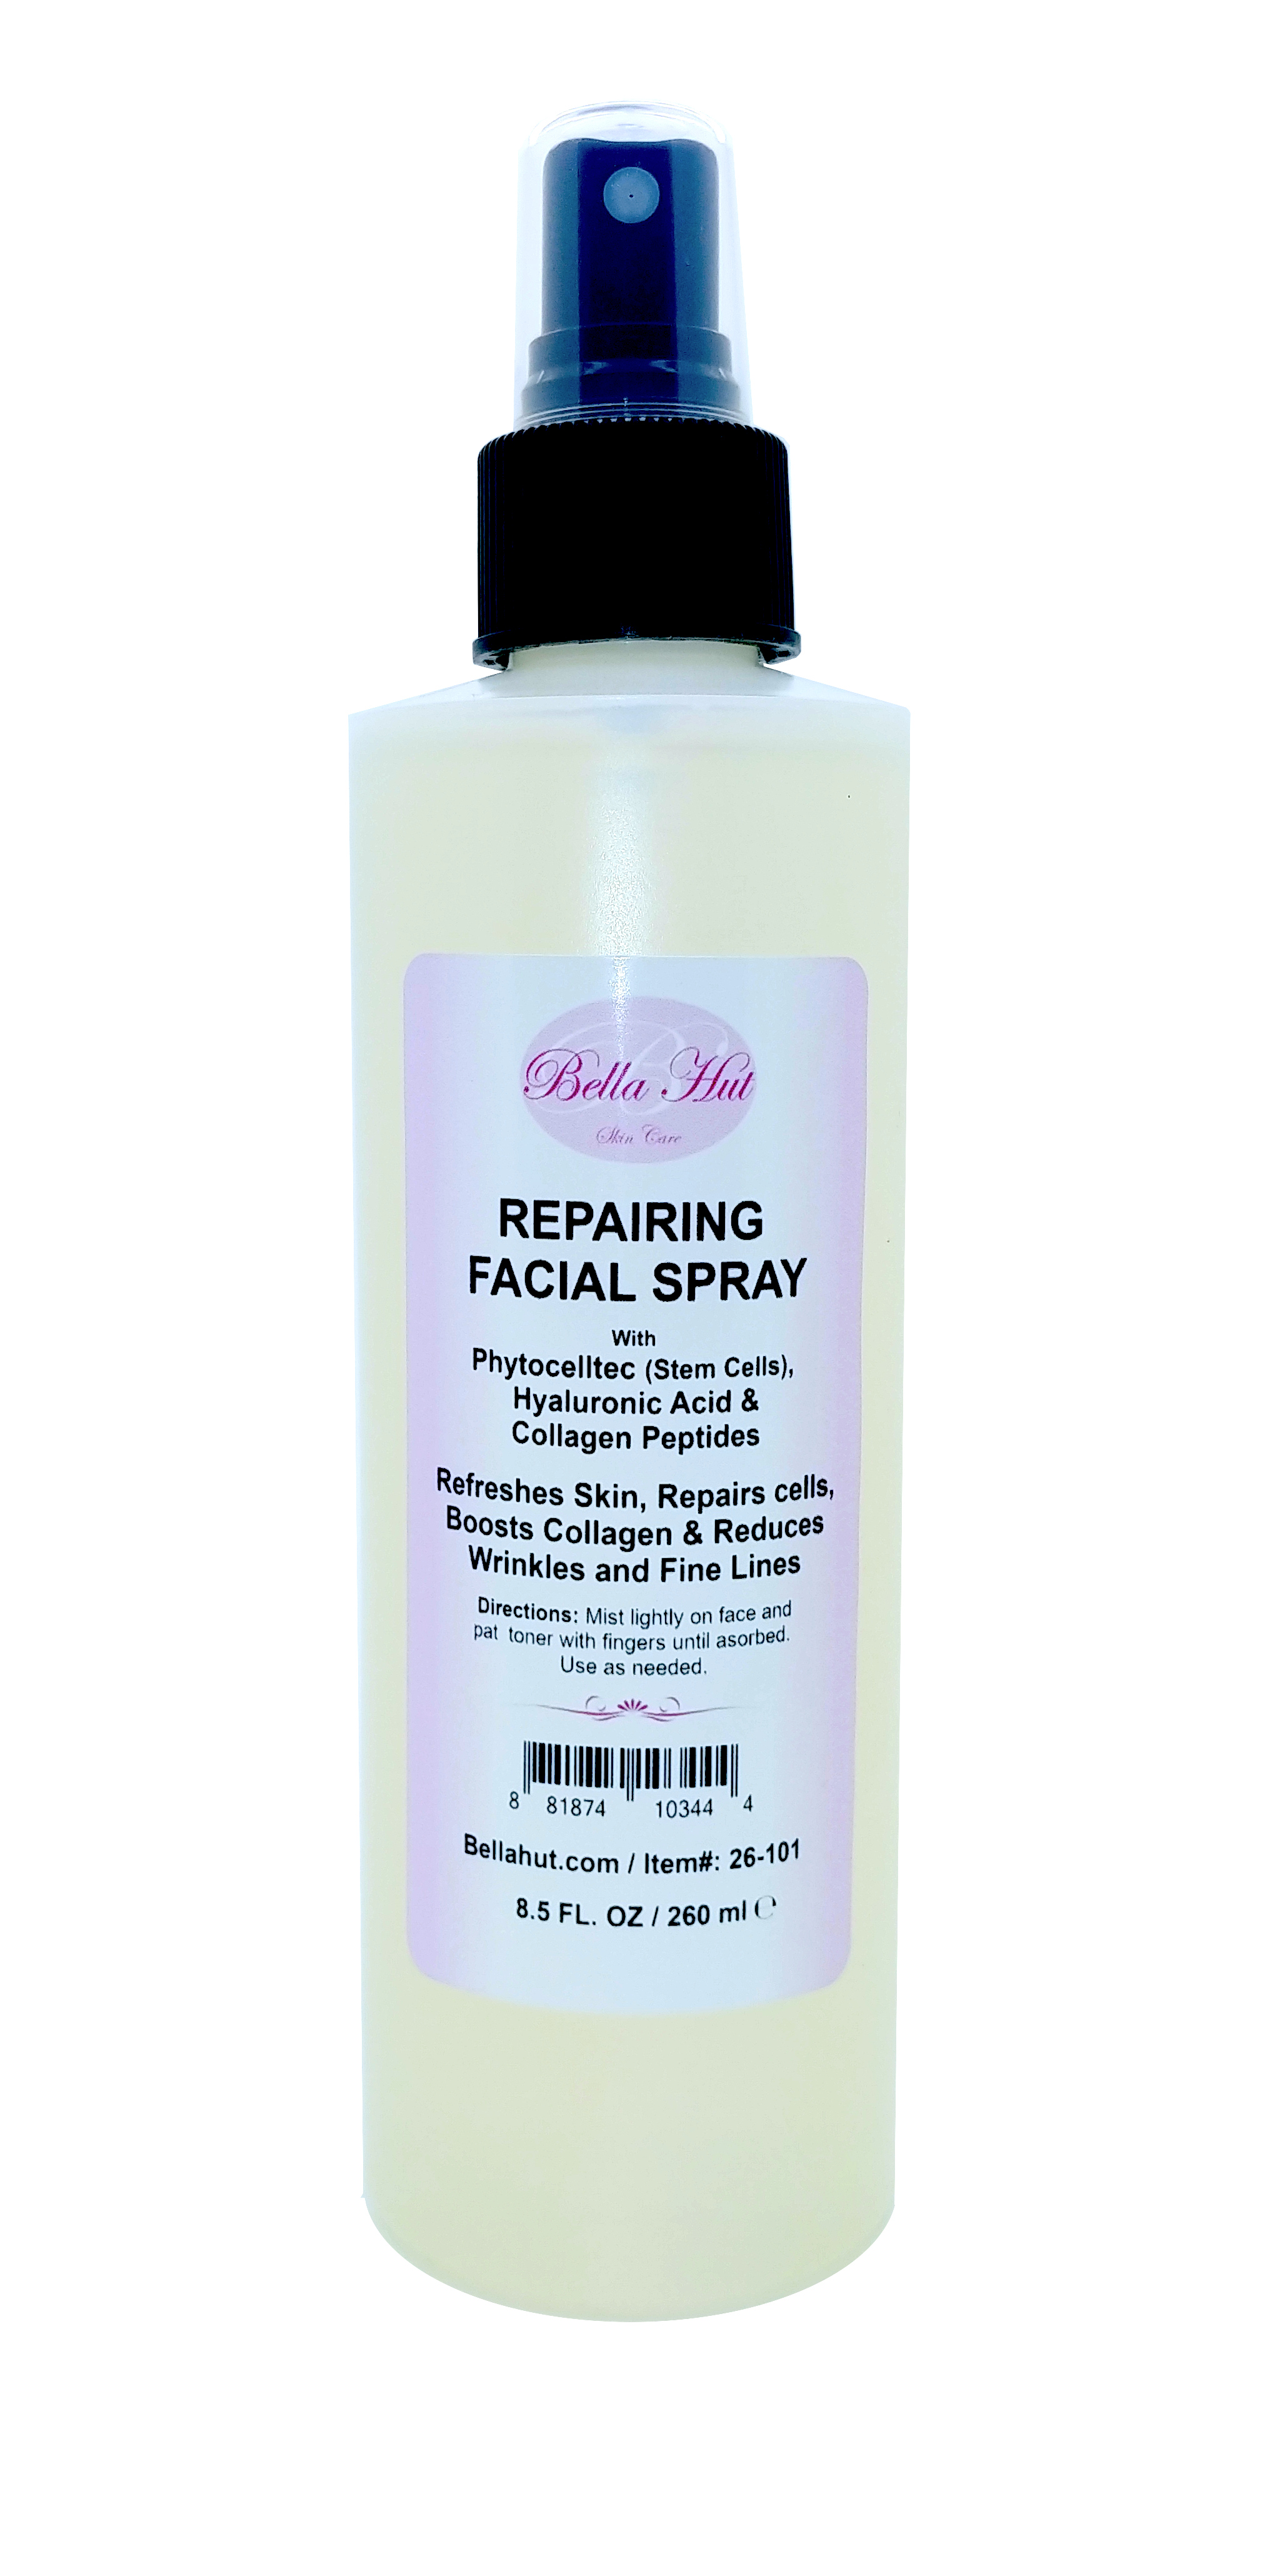 Repairing Facial Spray with Phytocelltec, Hyaluronic Acid And Tripeptide-29 Collagen Peptide helps to repair cells